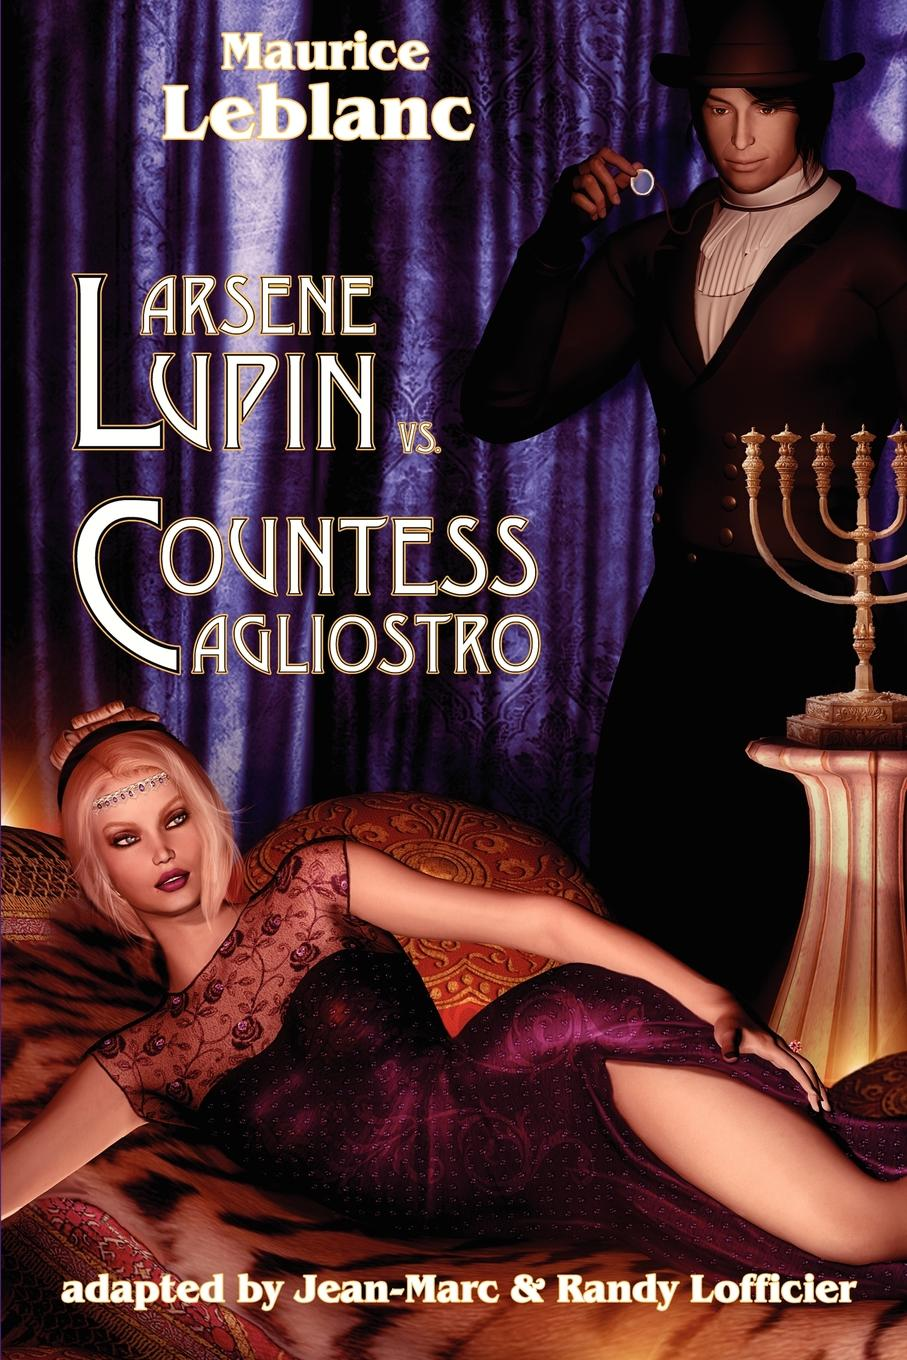 Maurice Leblanc Arsene Lupin Vs Countess Cagliostro set wonders in the new year s plaid